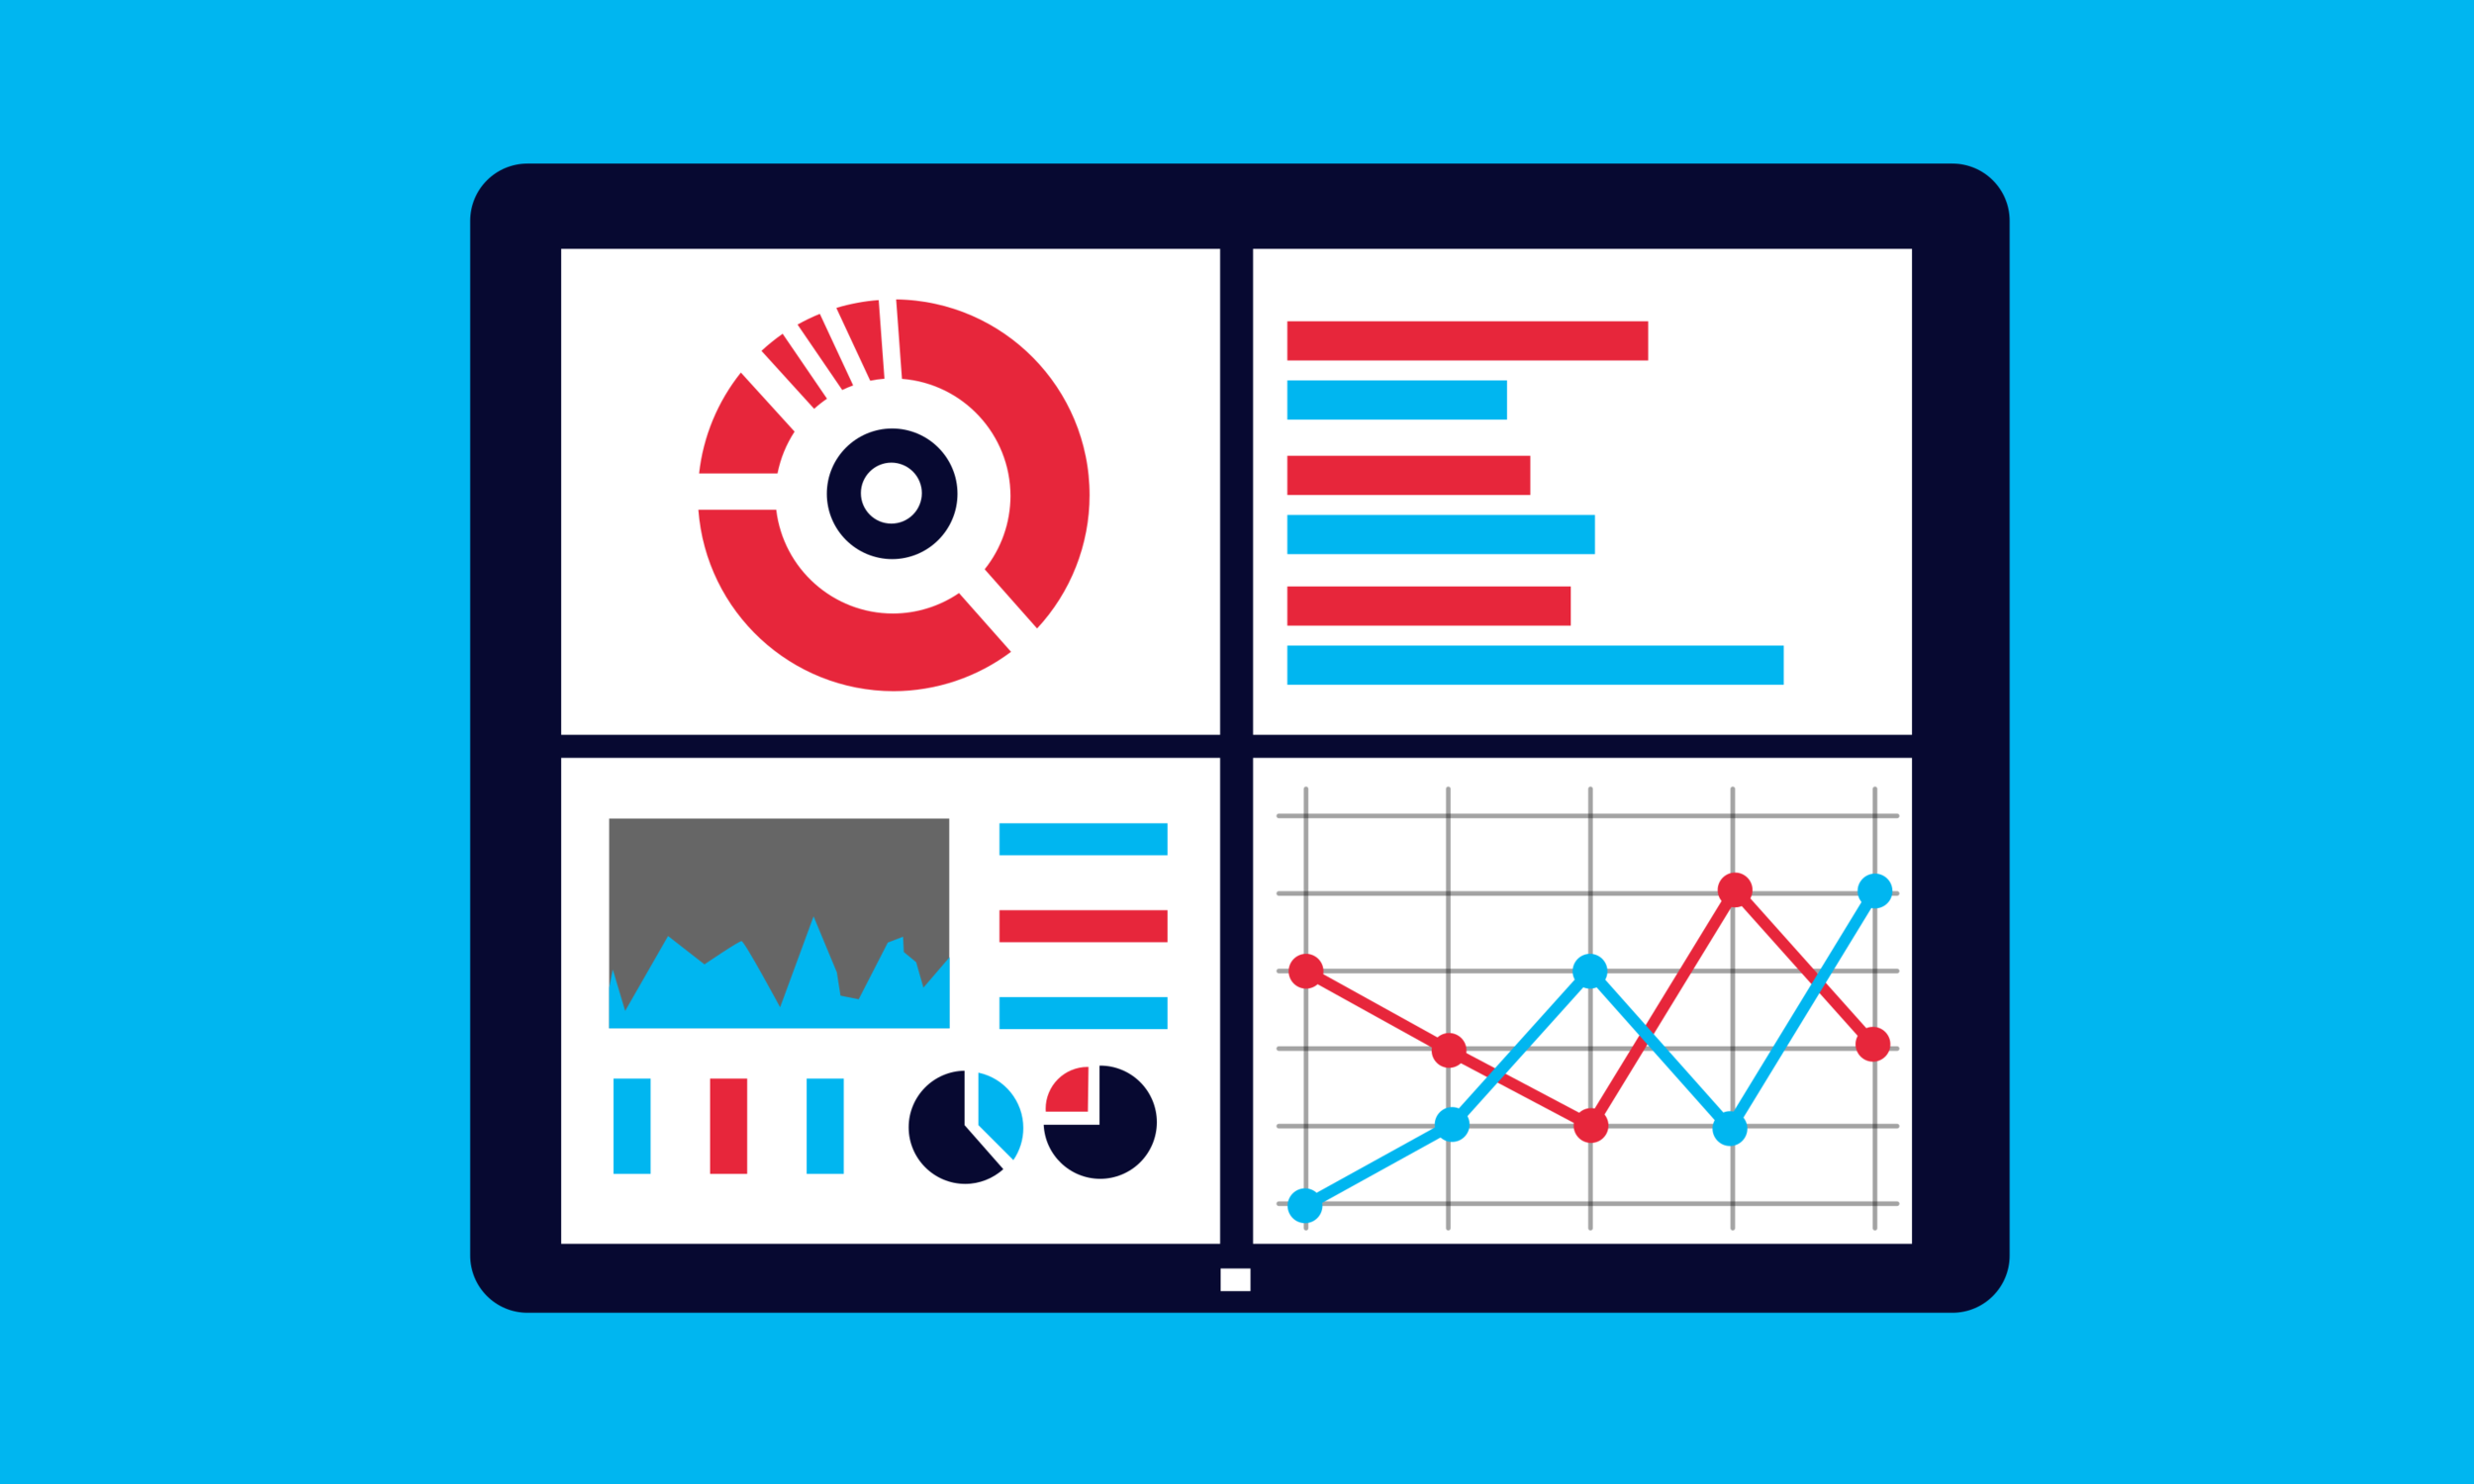 We deliver our solutions in dashboard reports and interactive visualizations to bring the results to life. -